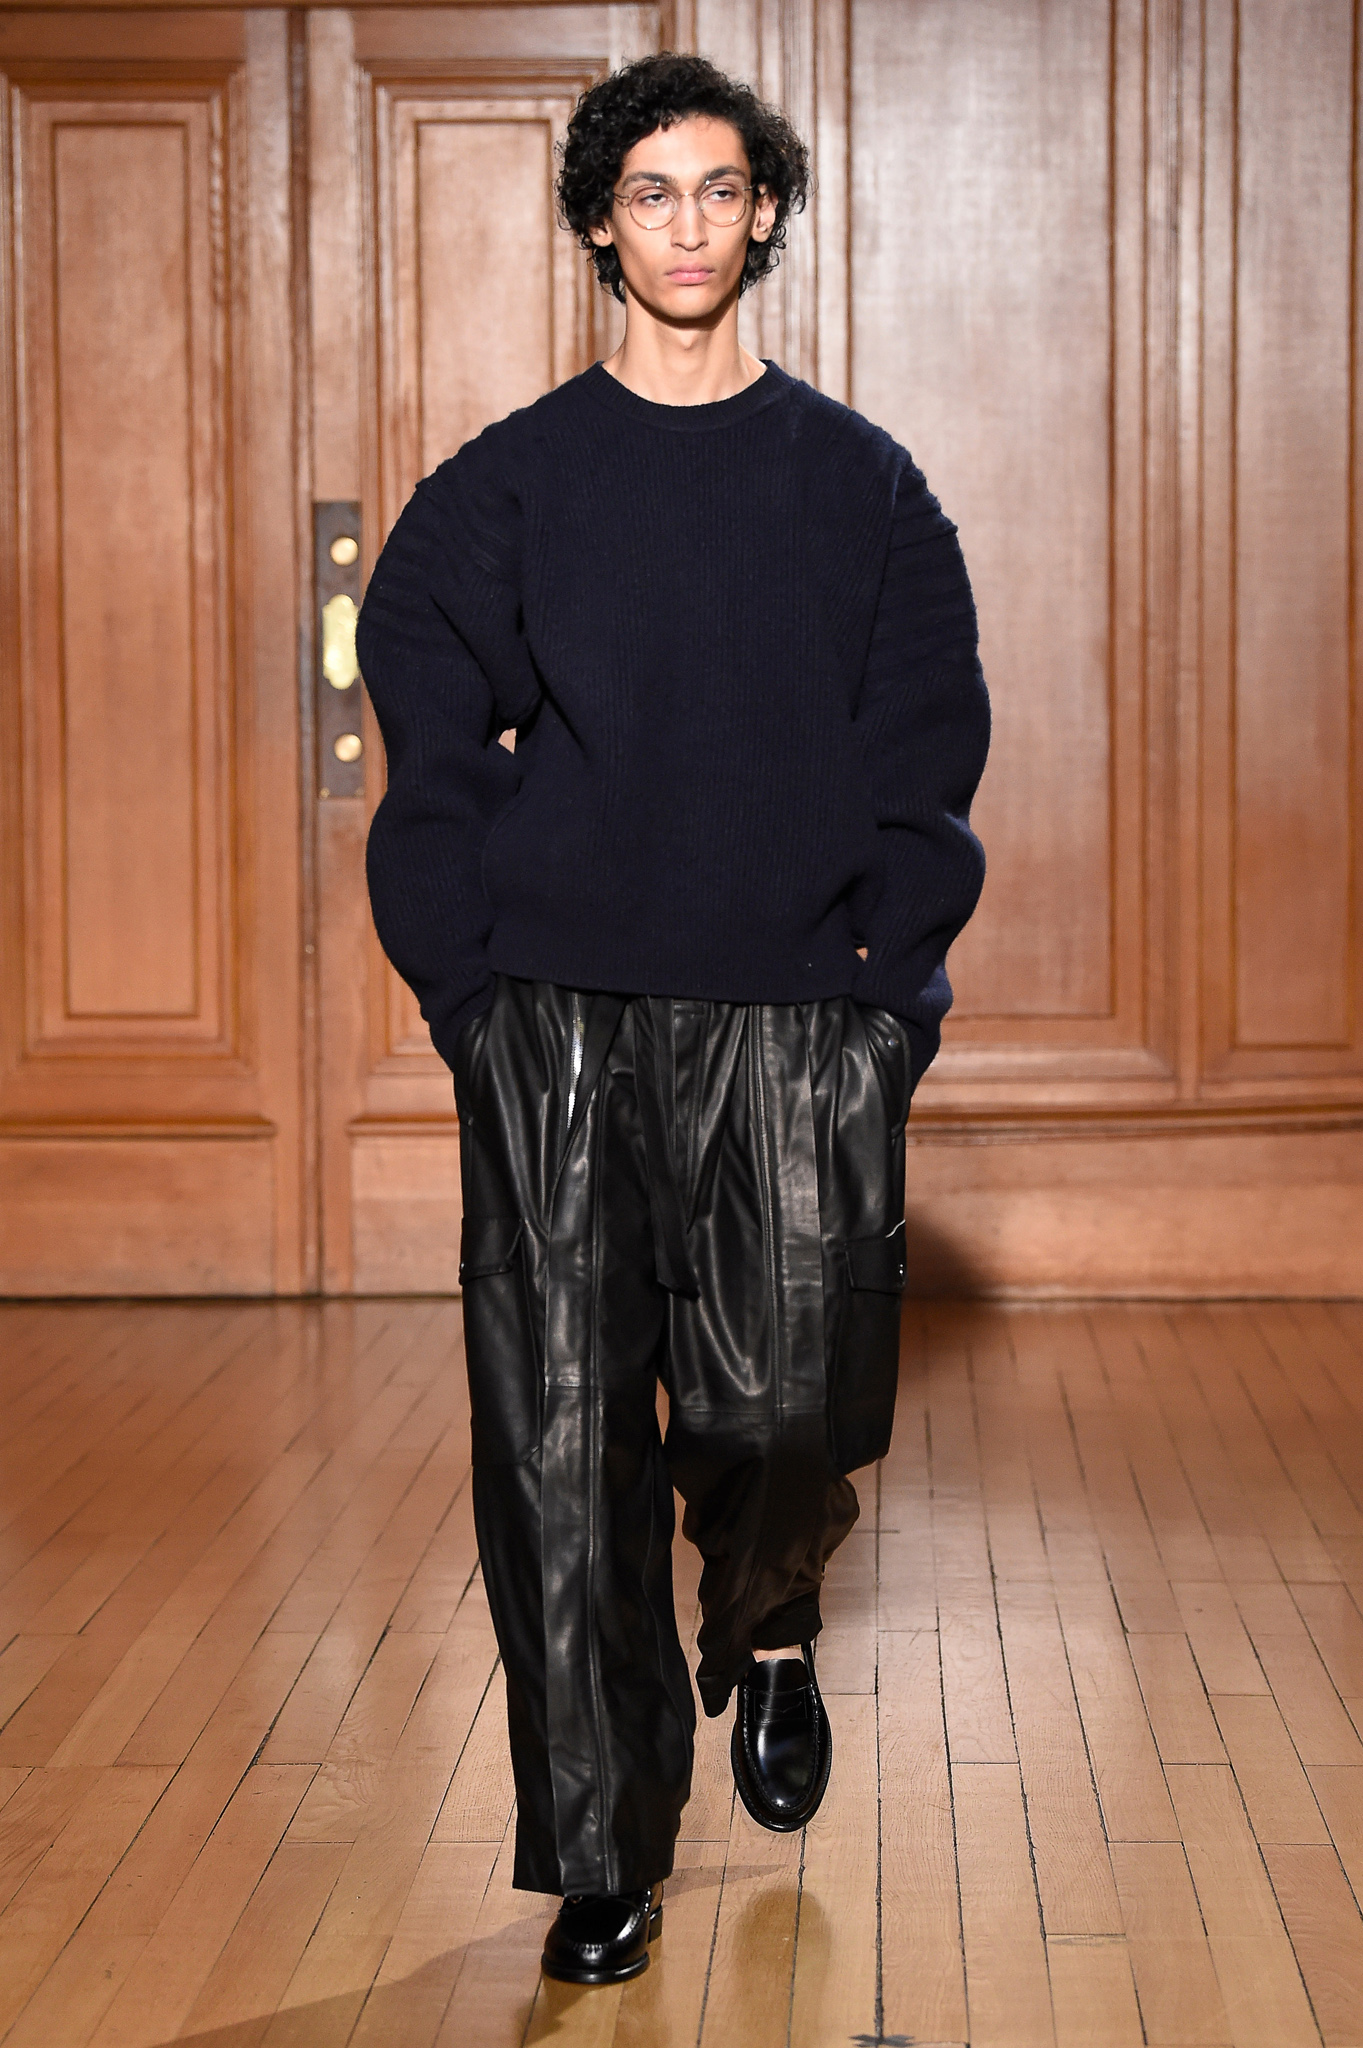 Hed Mayner Men's Fall 2018